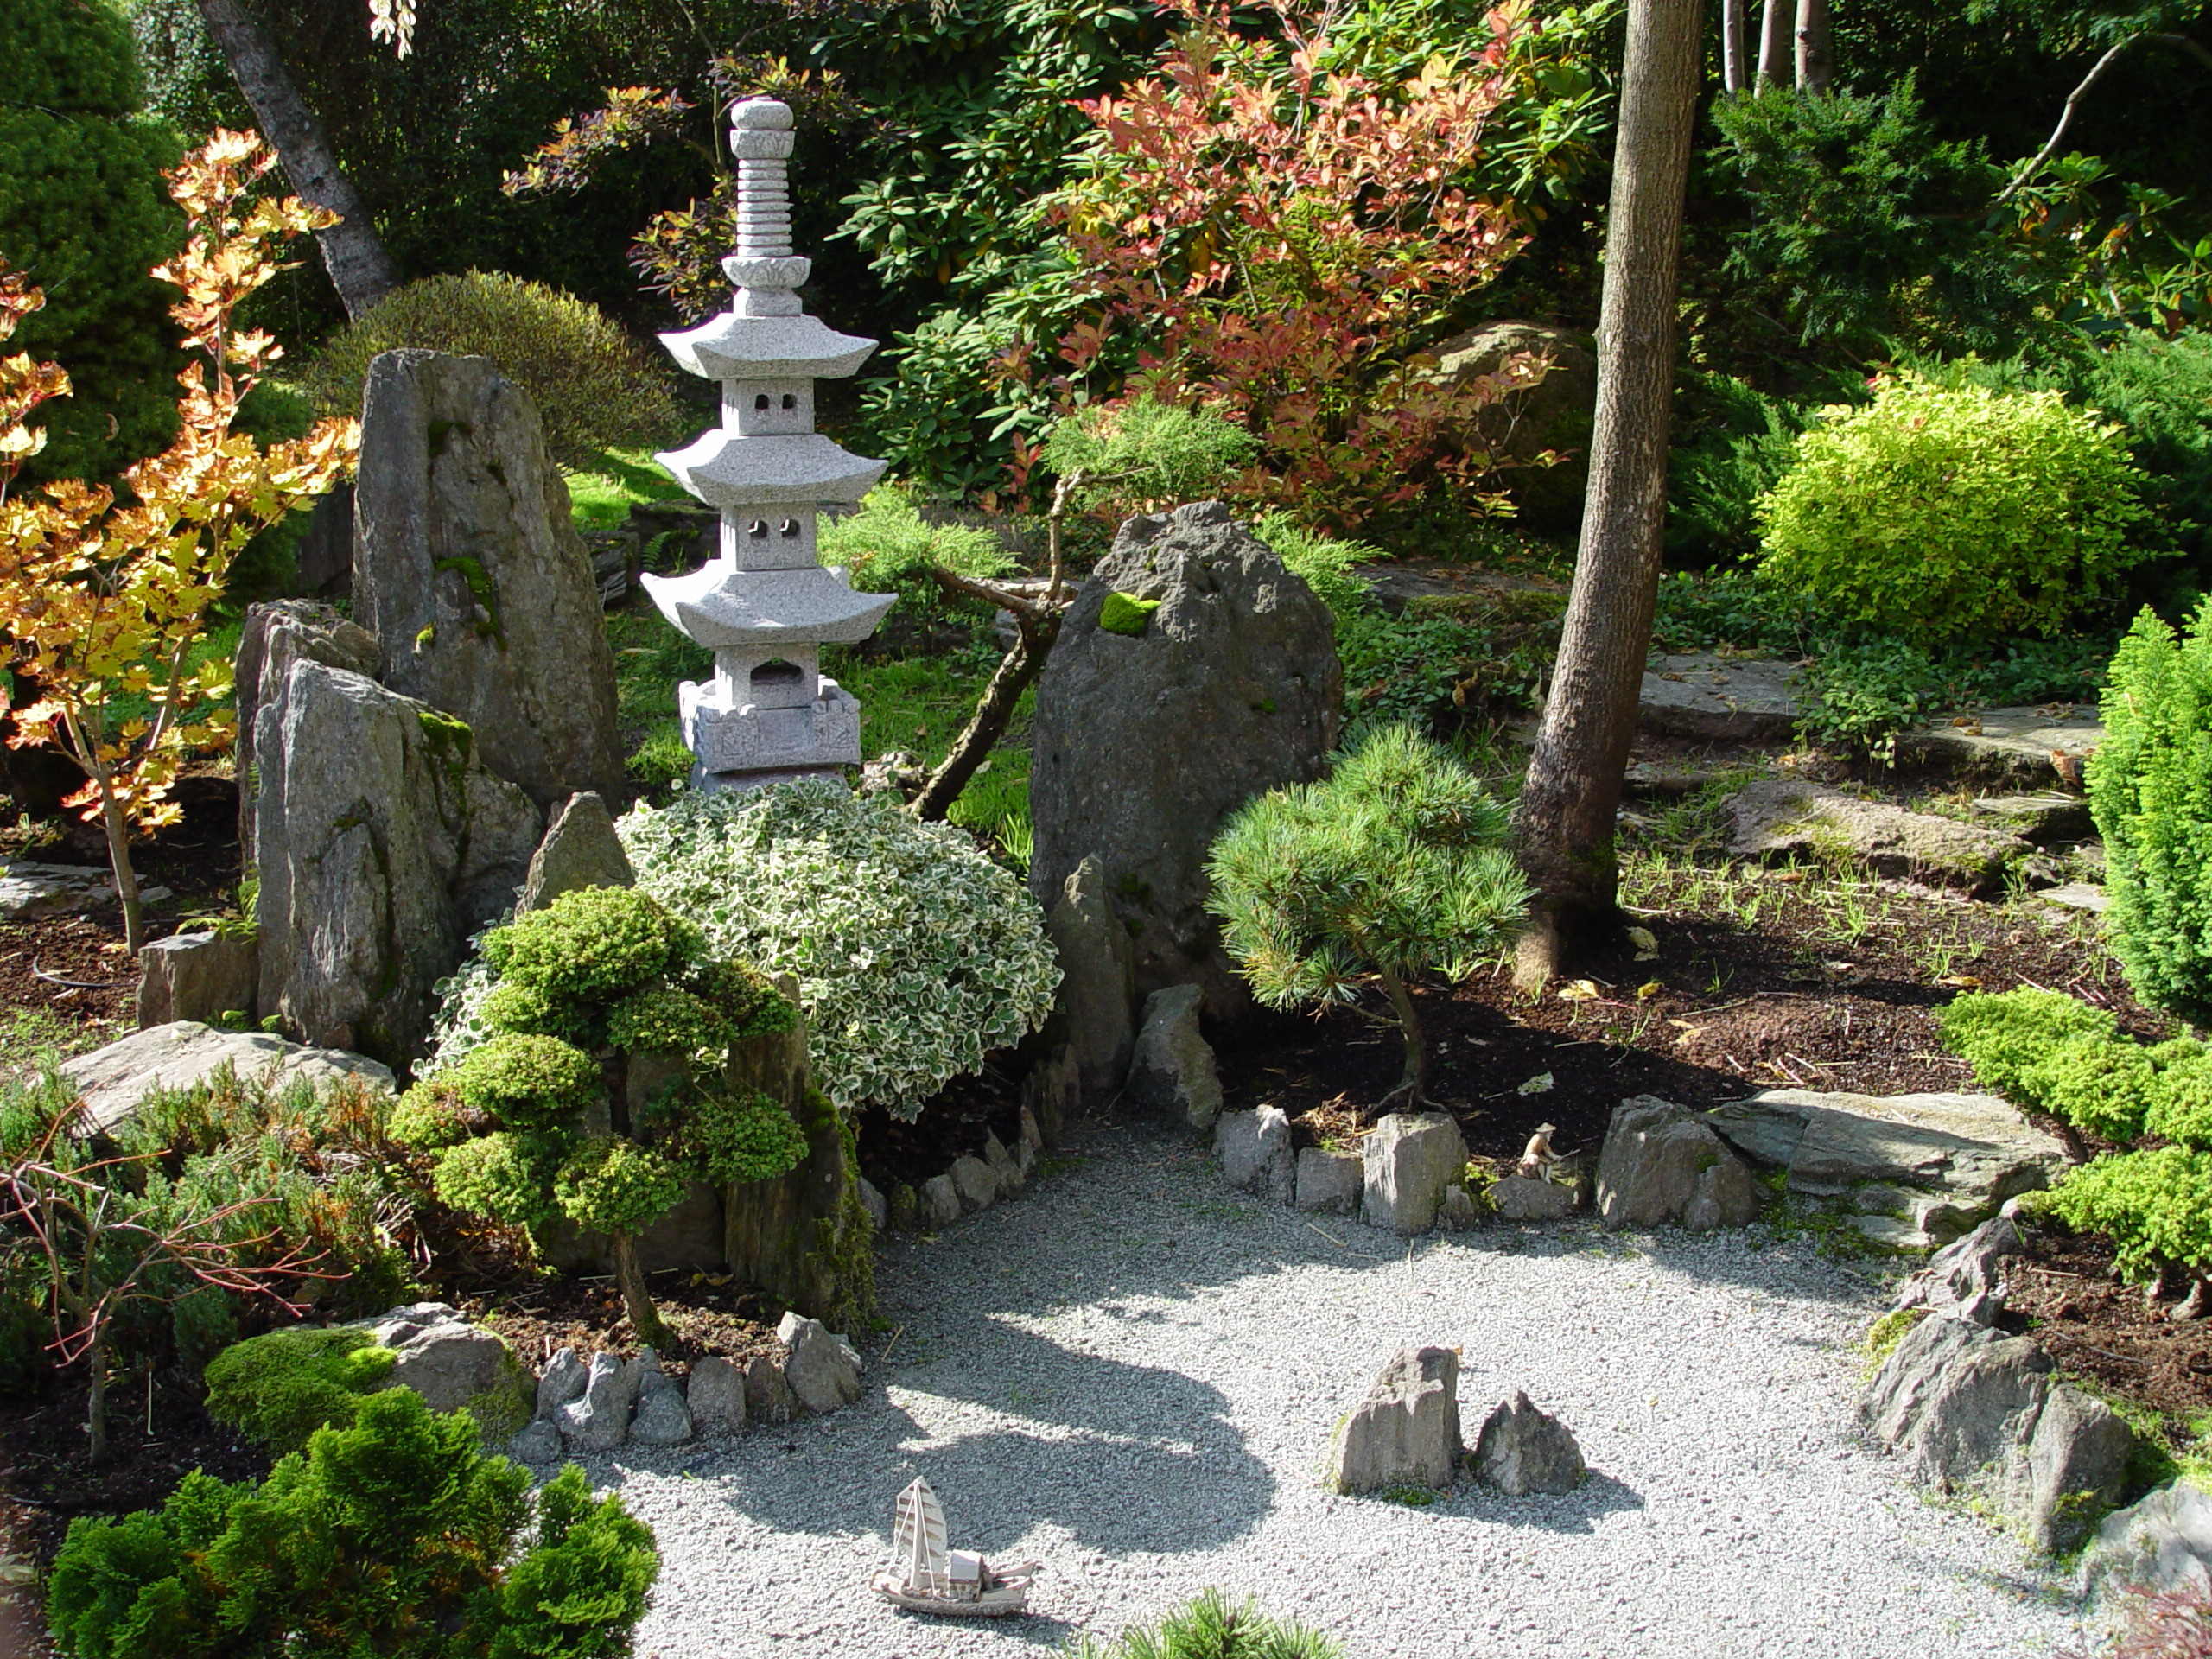 Asia Garten 1000 43 Images About Japanese Gardens On Pinterest